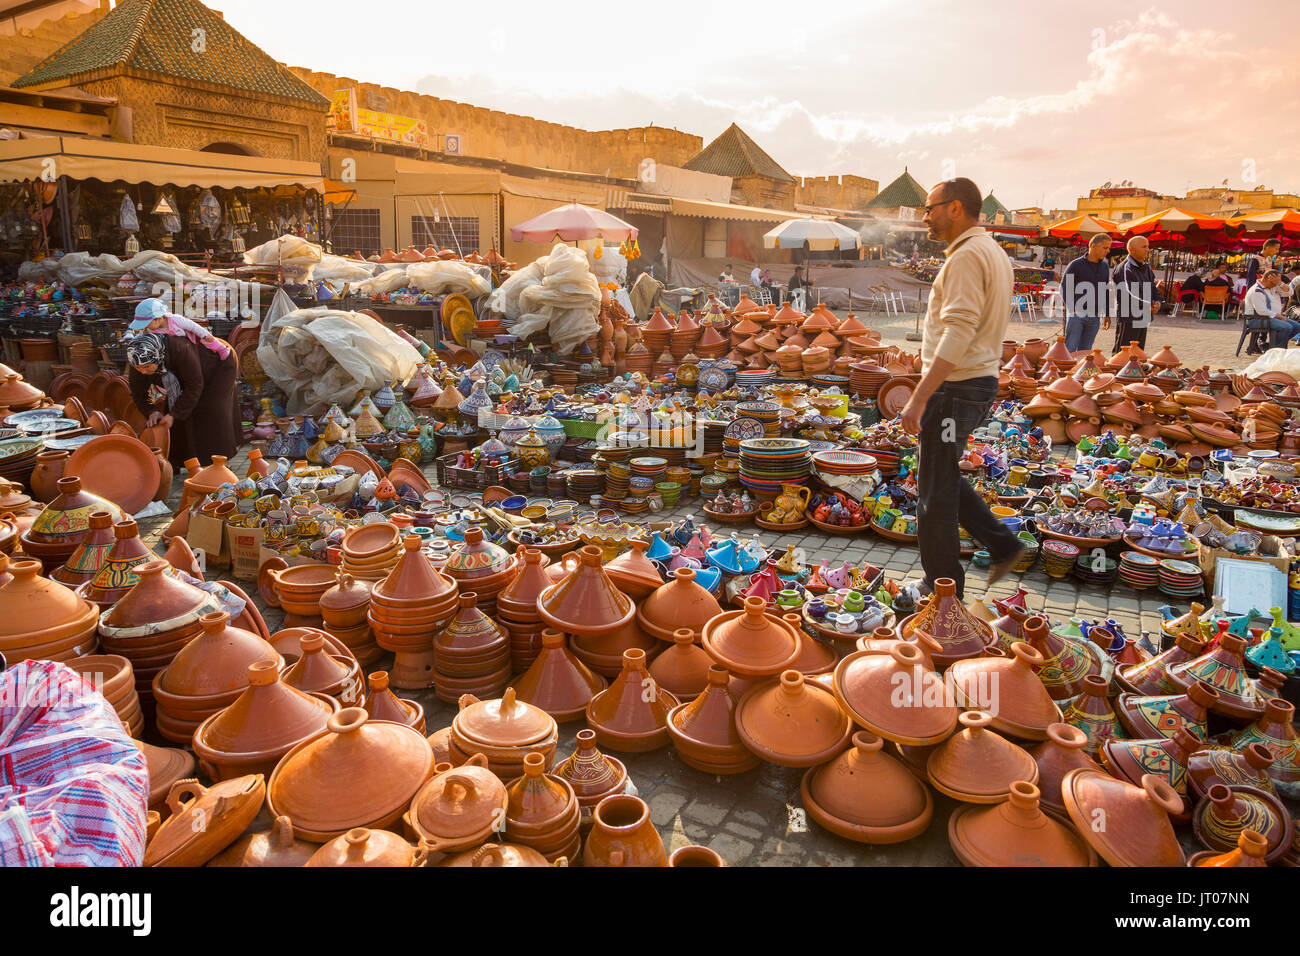 Pottery, tajines dishes, Imperial city Meknes, Morocco, Maghreb North Africa - Stock Image